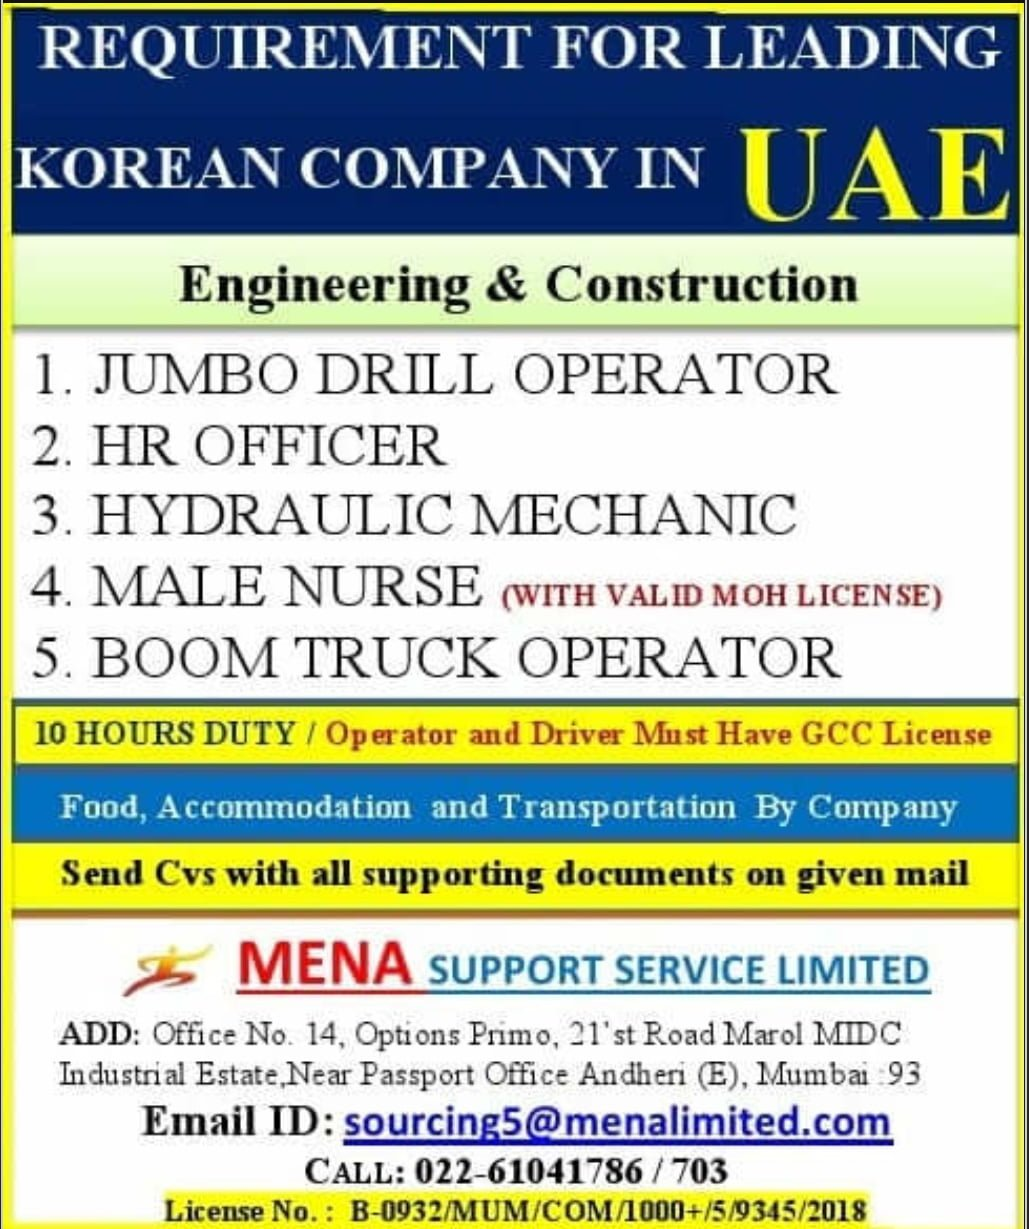 REQUIREMENT FOR COMPANY IN UAE ENGINEERING & CONSTRUCTION